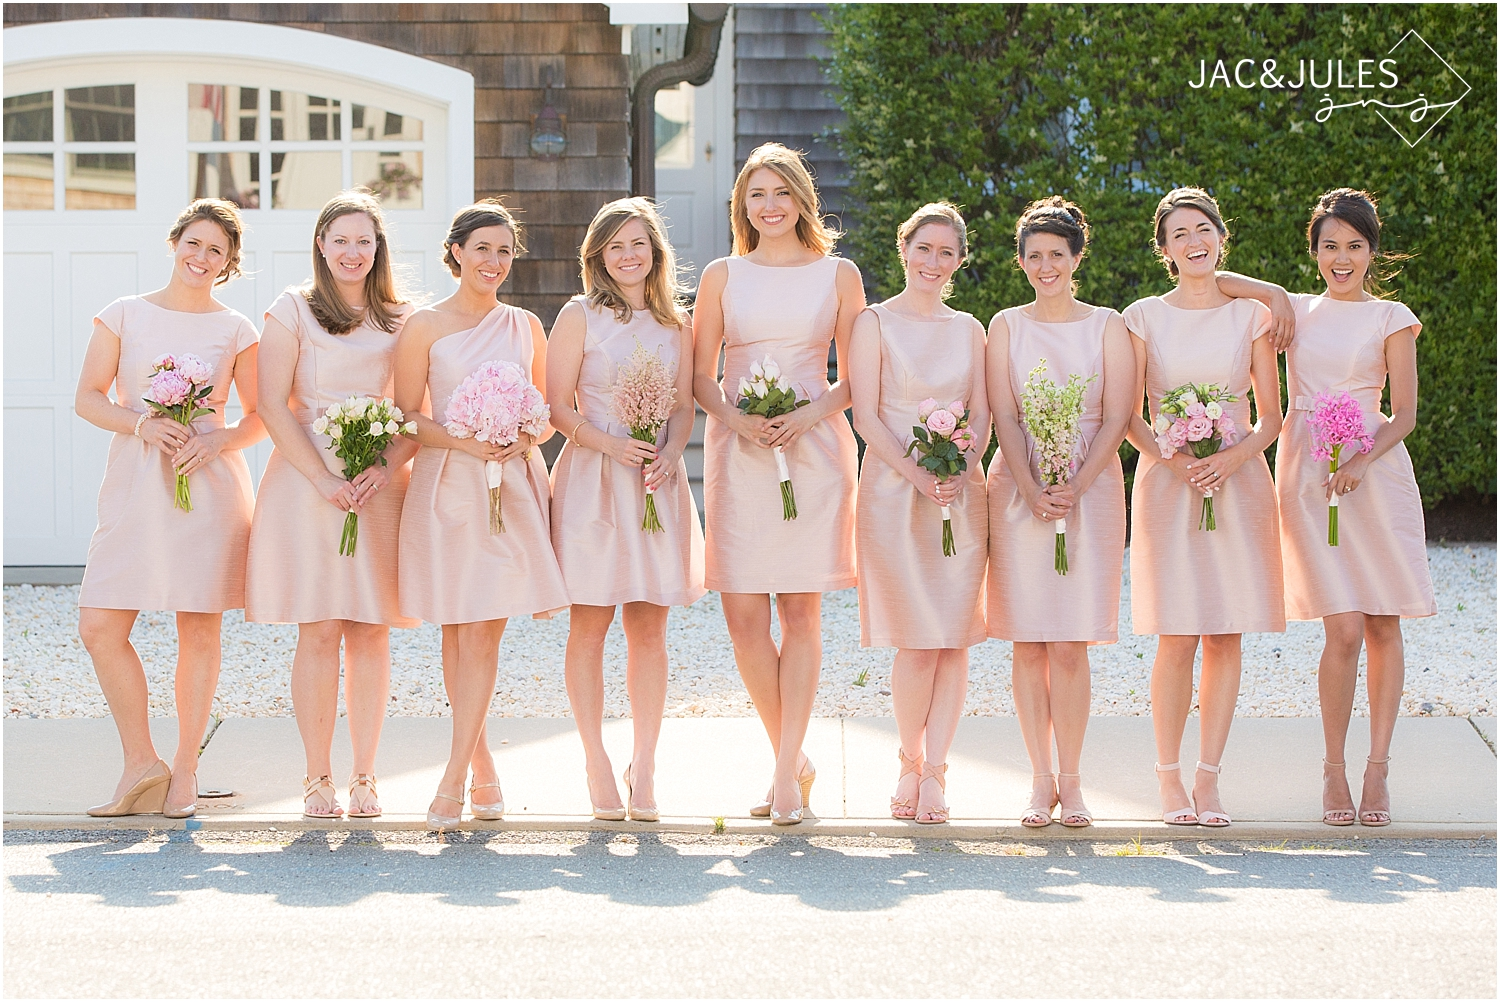 jacnjules photographs mix-matched bridesmaids bouquets, wedding trend